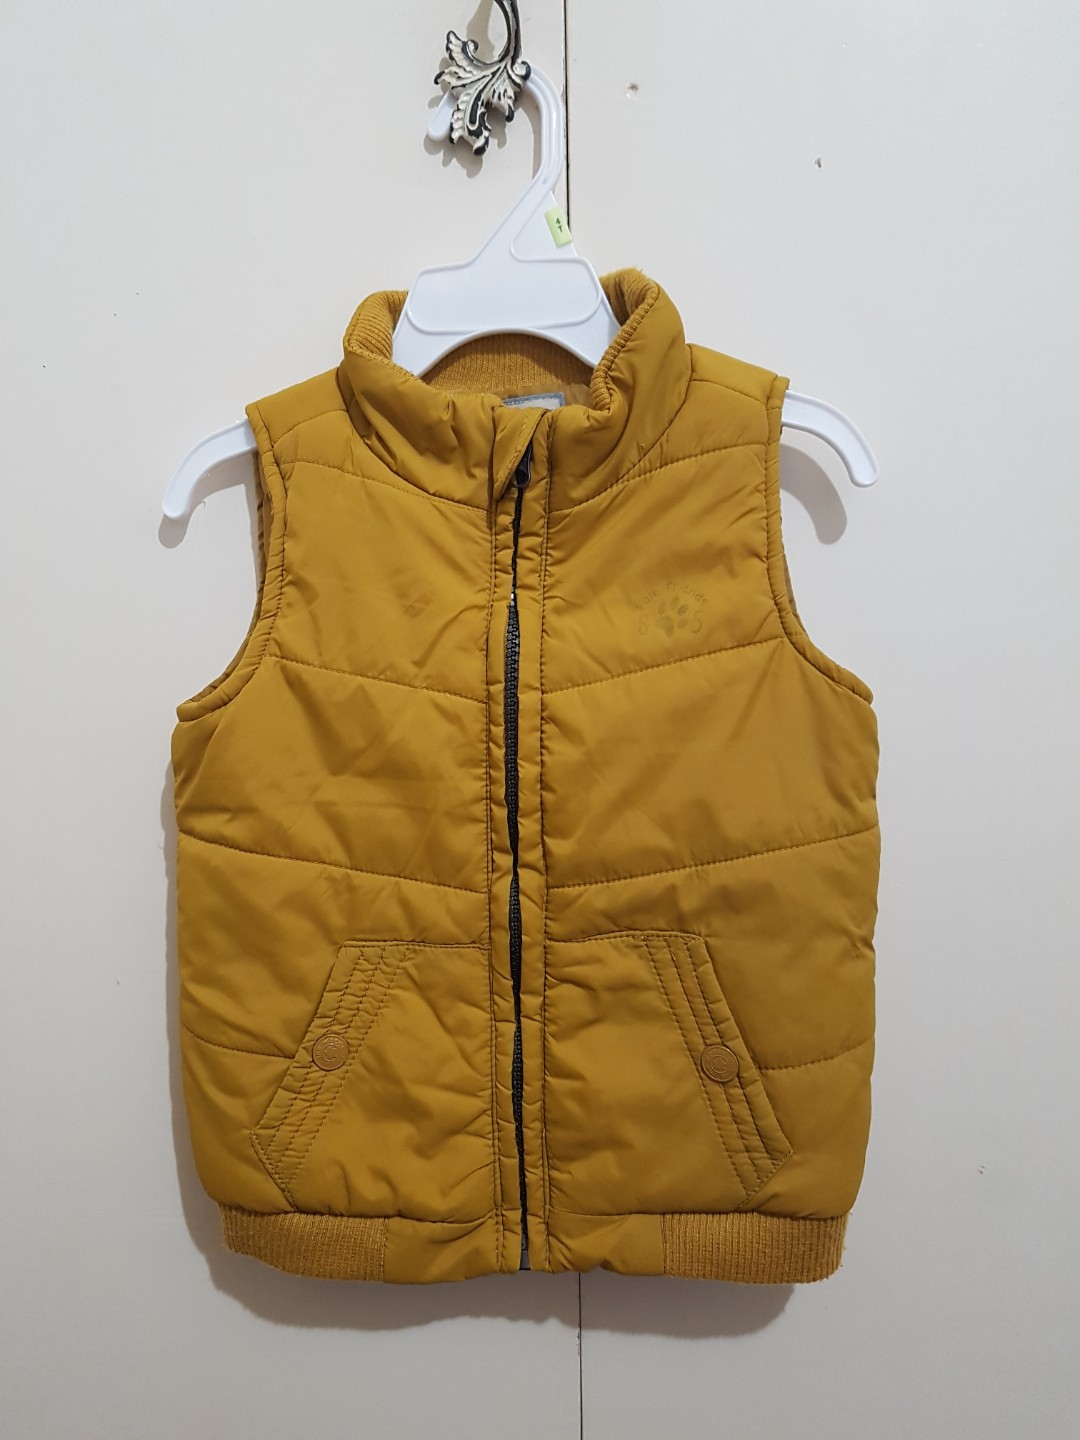 840ca91d2884 Mustard yellow bubble vest for 18-24 months old boy girl